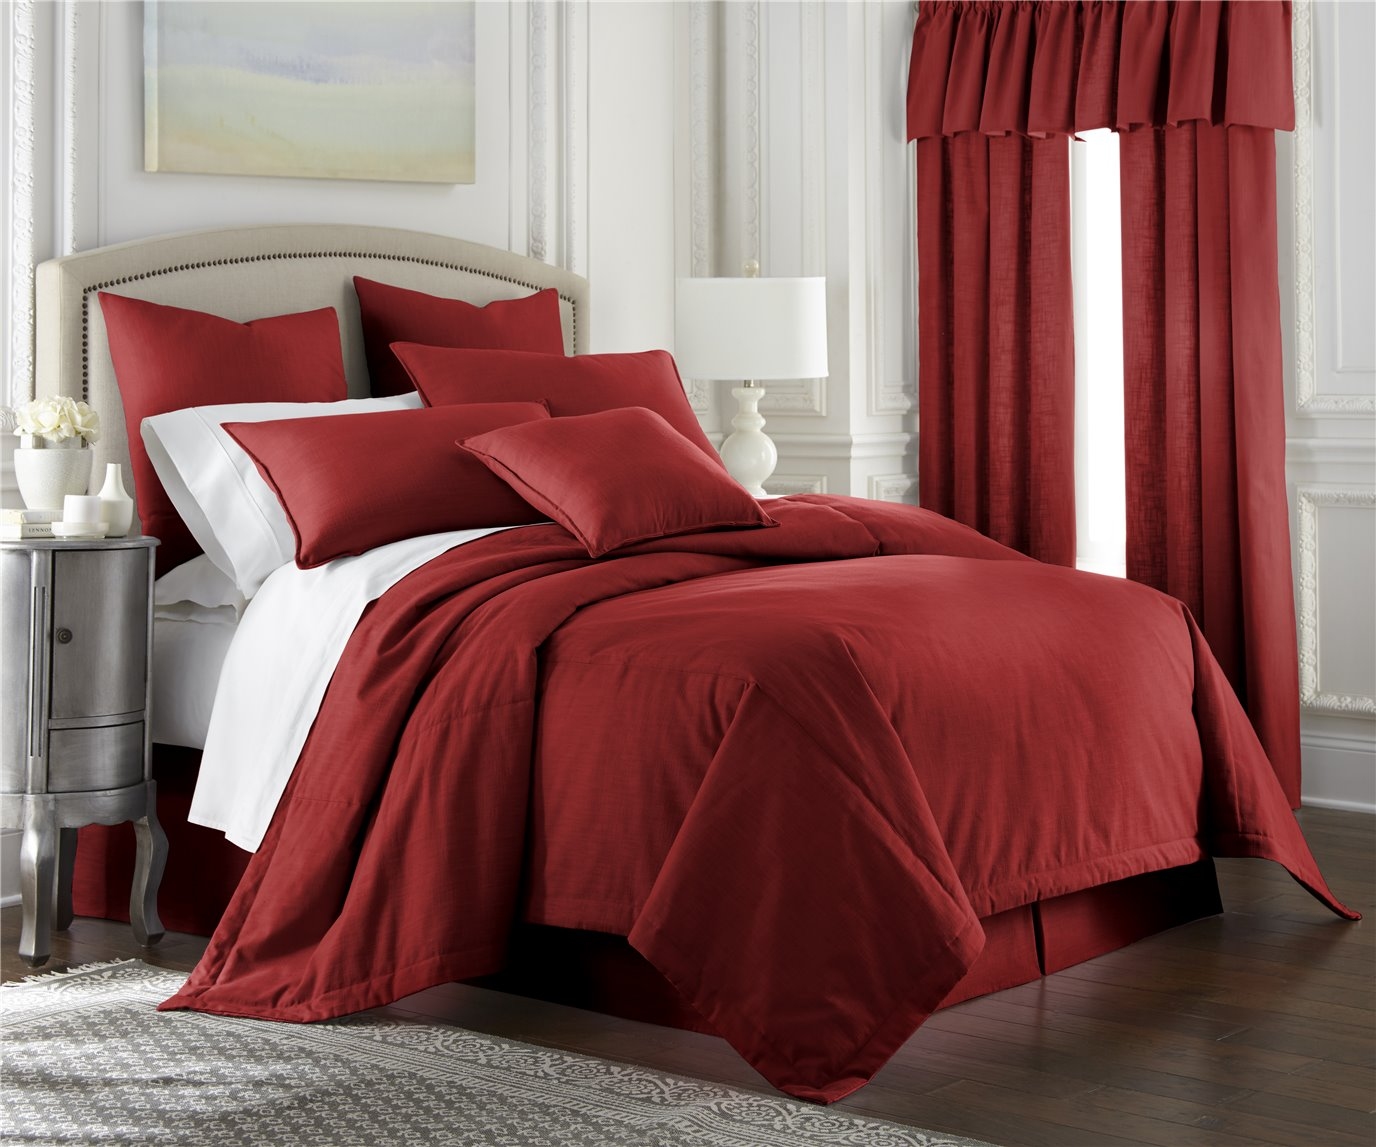 Cambric Red Duvet Cover King